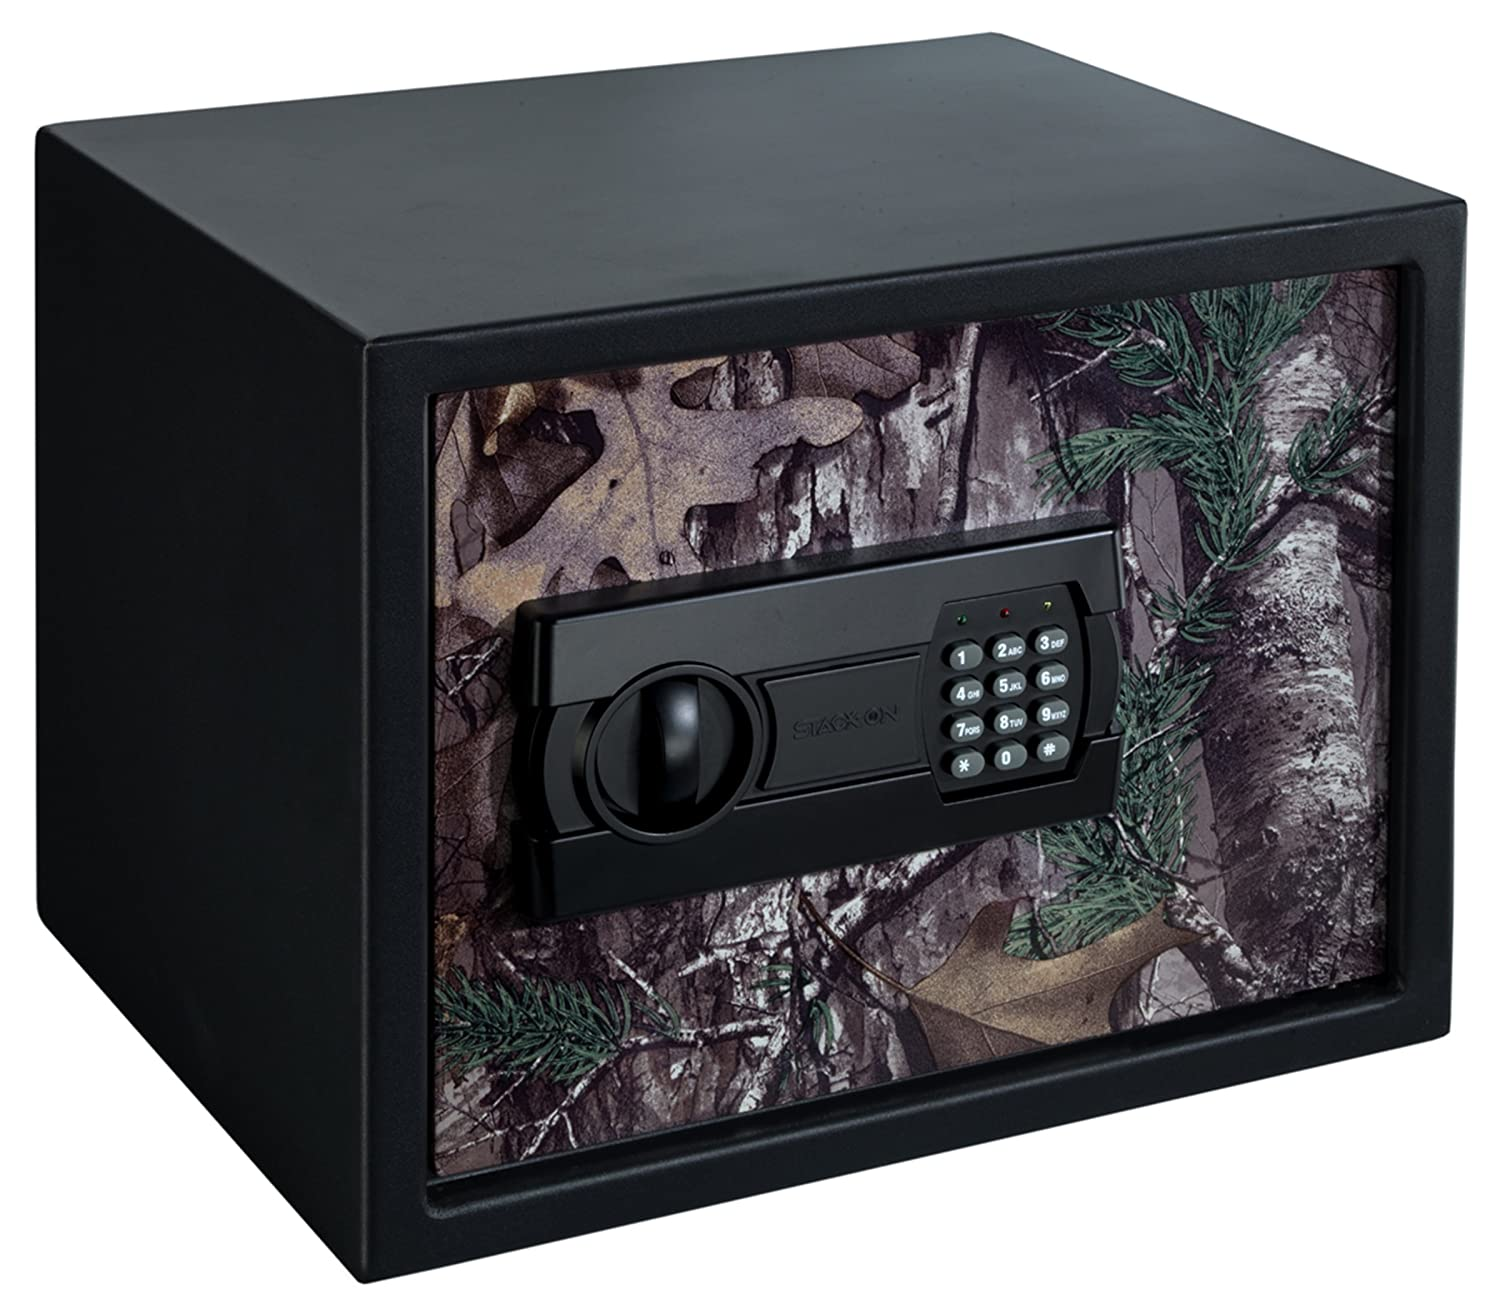 Amazon.com: Stack-On PS-1515 Large Personal Safe with Electronic Lock: Home Improvement